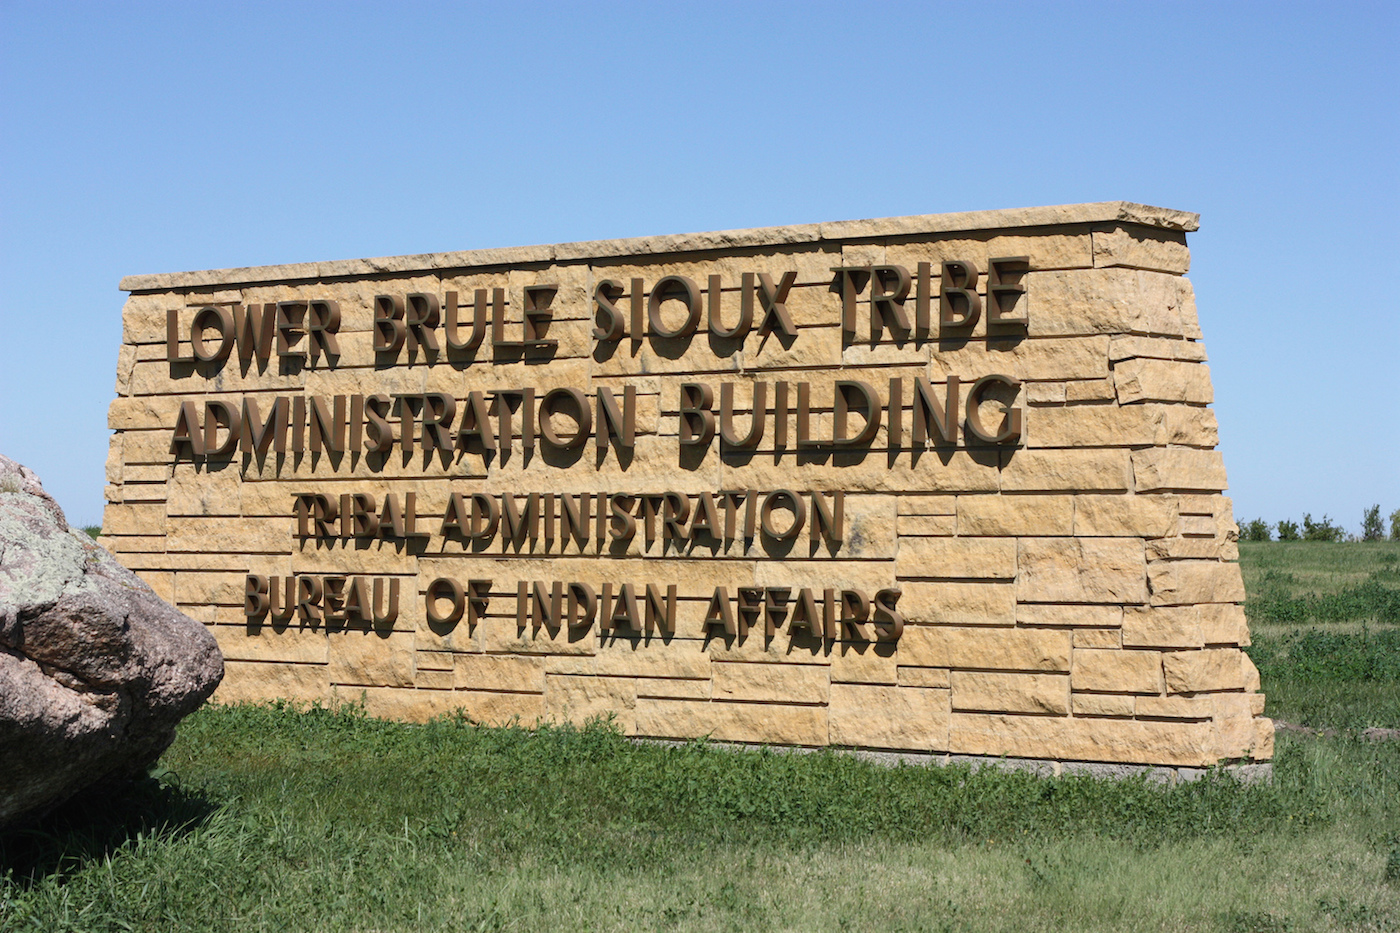 Lower Brule Sioux Tribe to remove invasive trees on reservation